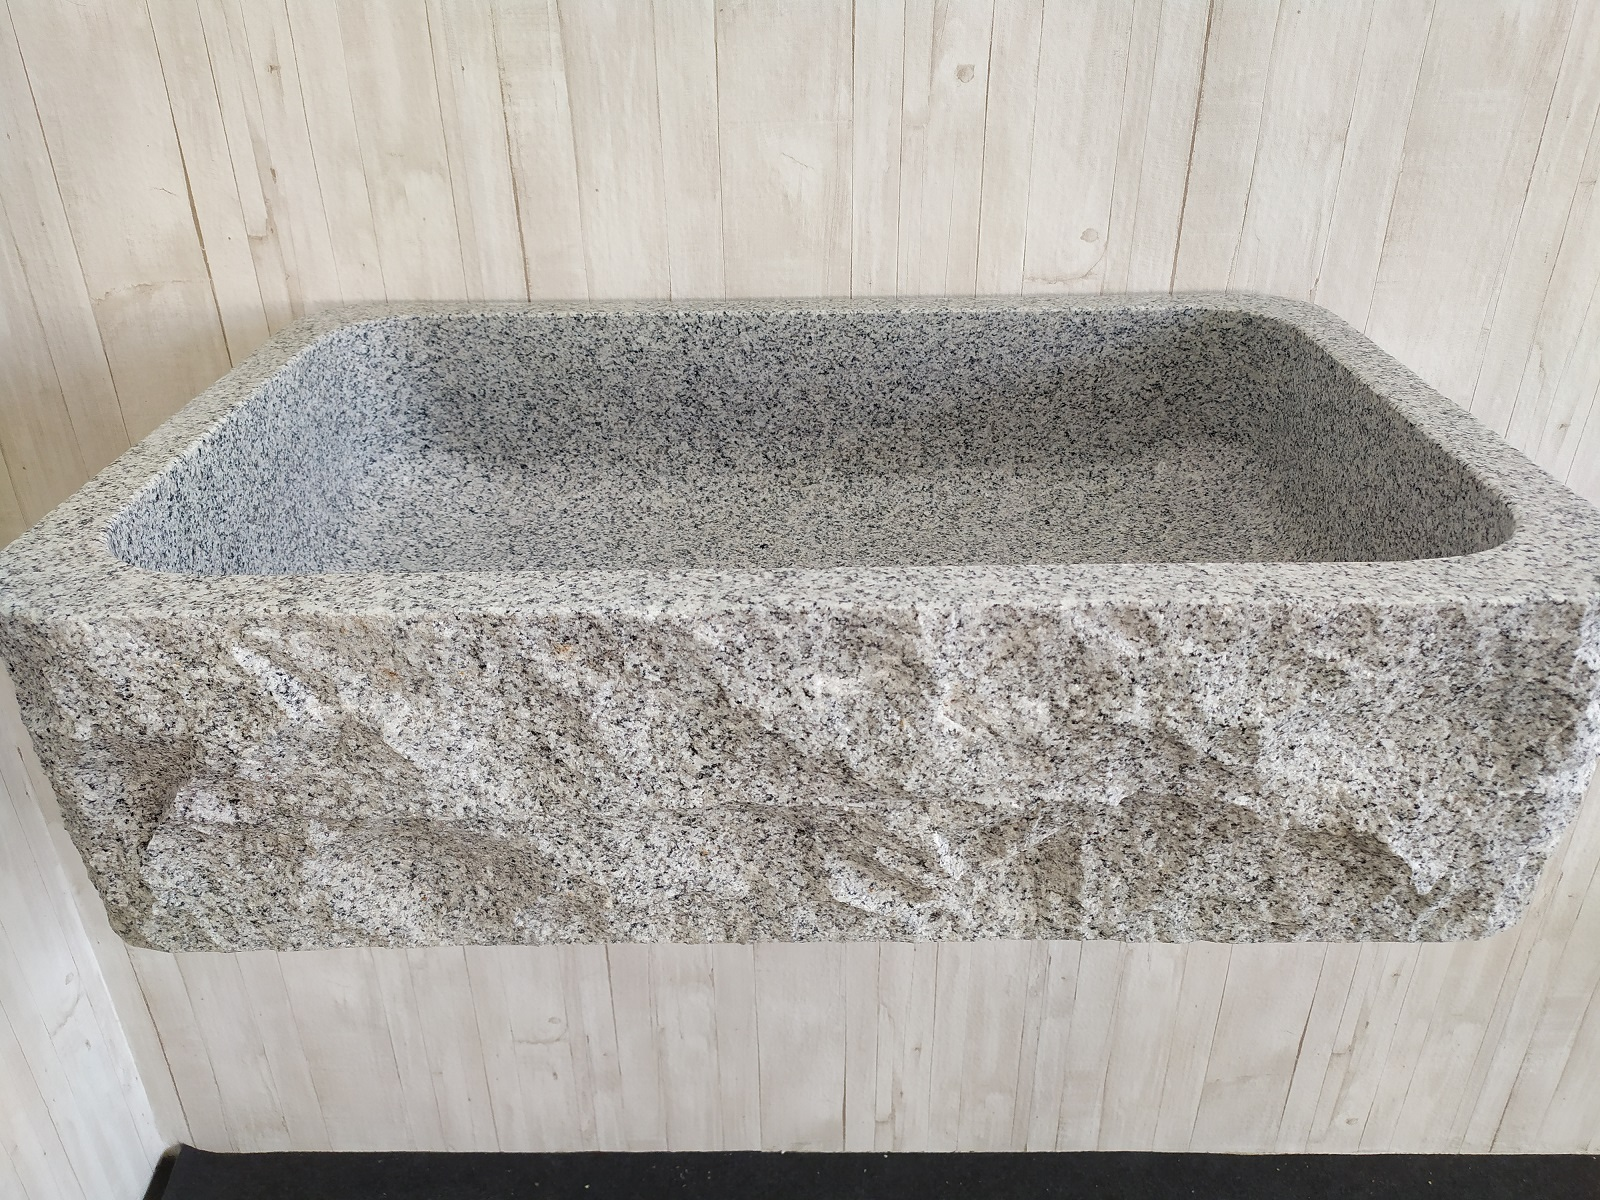 Lavelli Cucina Lavandini In Pietra Cucina.Granite Kitchen Sink 13 Measures 81 X 51 Cm Height 21 Cm Tiarrediamo It